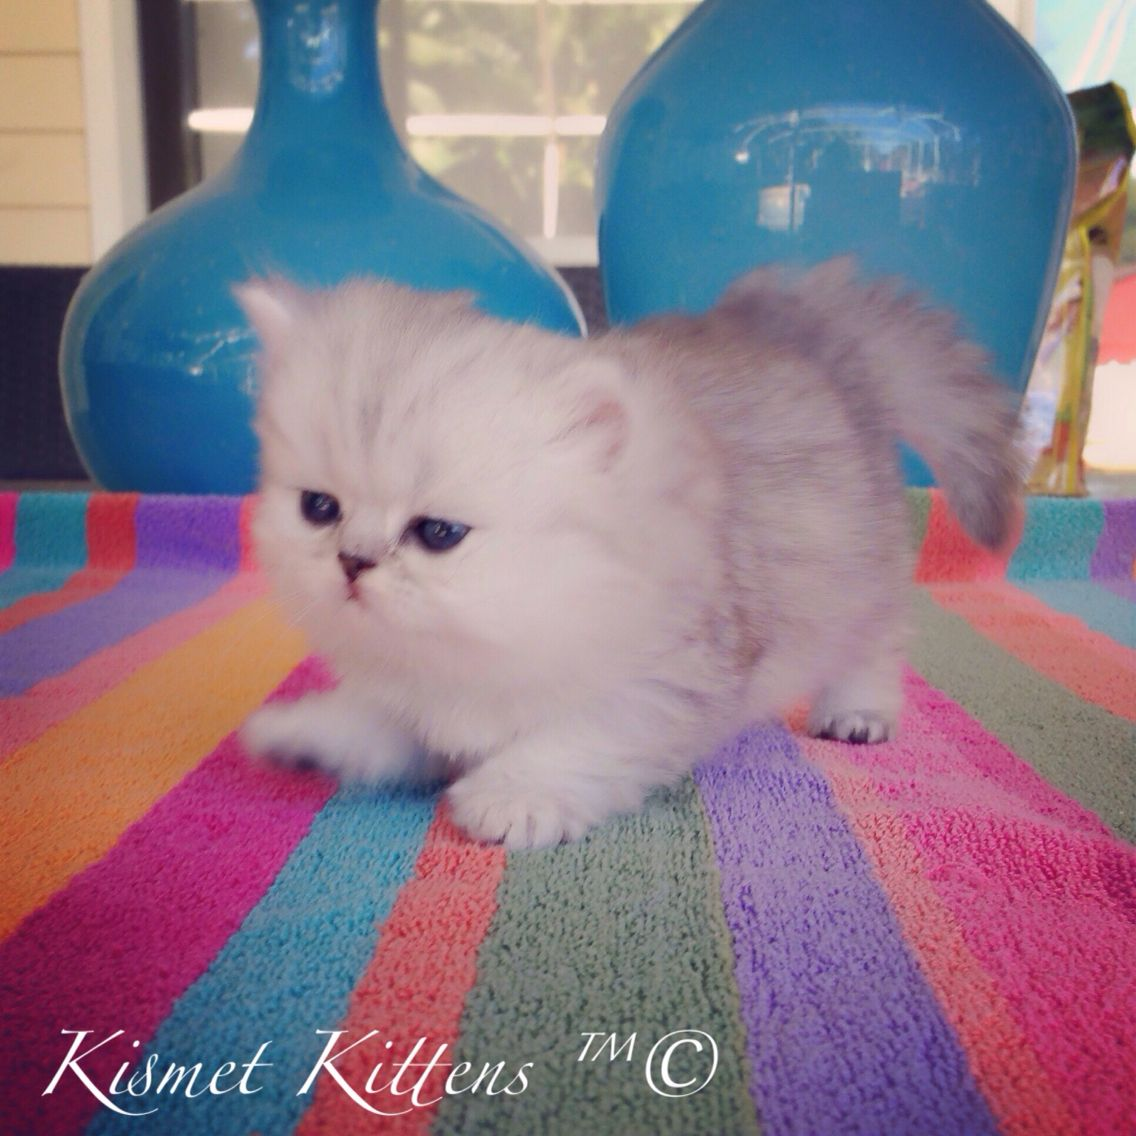 Kismet Kittens For Sale Ex Small Teacup Silver Shaded Persian Doll Face Kittens Persian Cat Doll Face Persian Kittens For Sale Teacup Persian Kittens